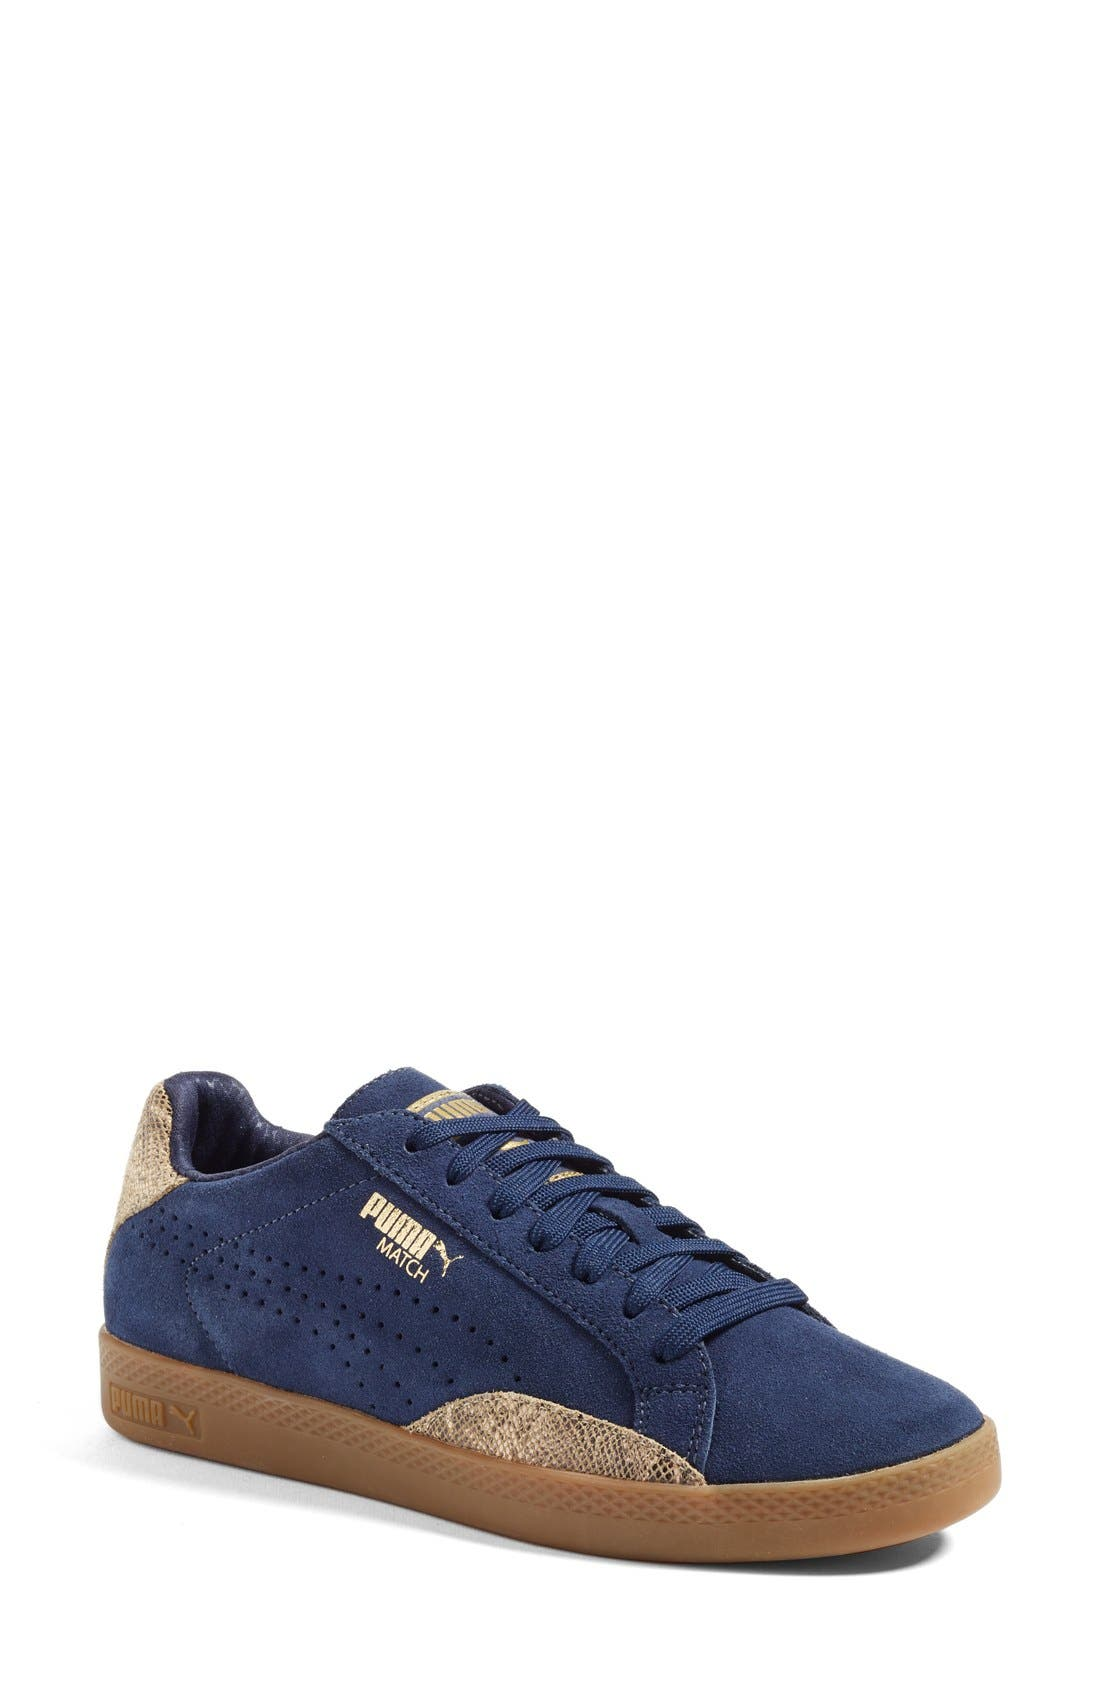 Main Image - PUMA 'Match Lo - Basic Sport' Leather Sneaker (Women)